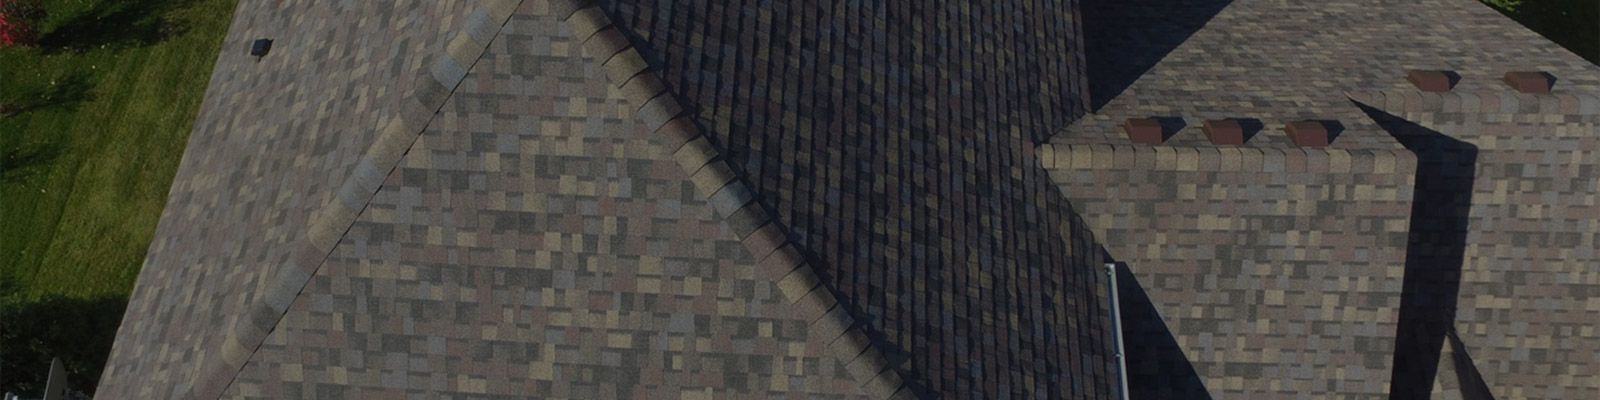 Residential Roof Replacement Burnsville MN